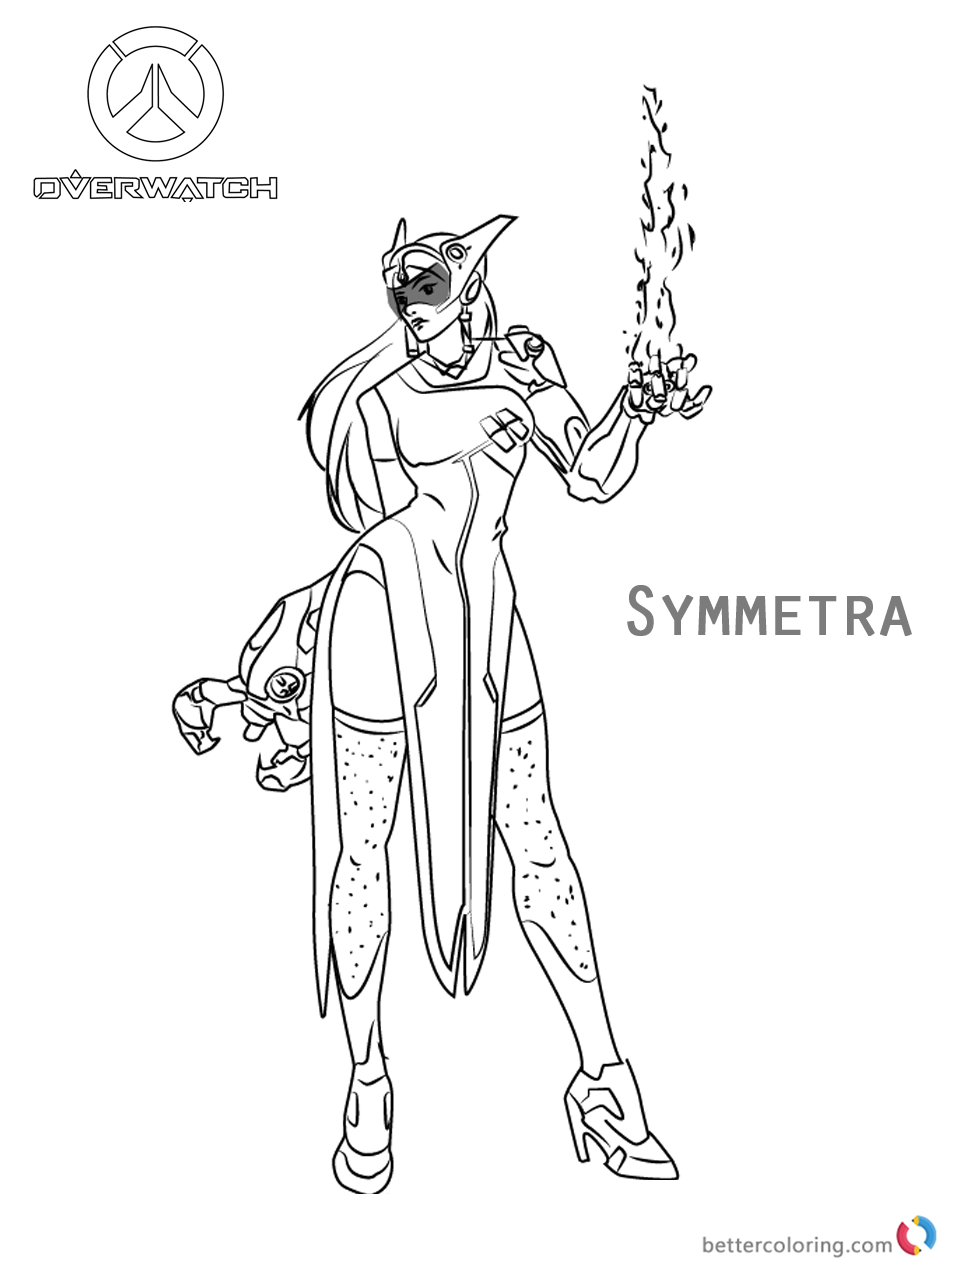 Symmetra from Overwatch coloring pages printable